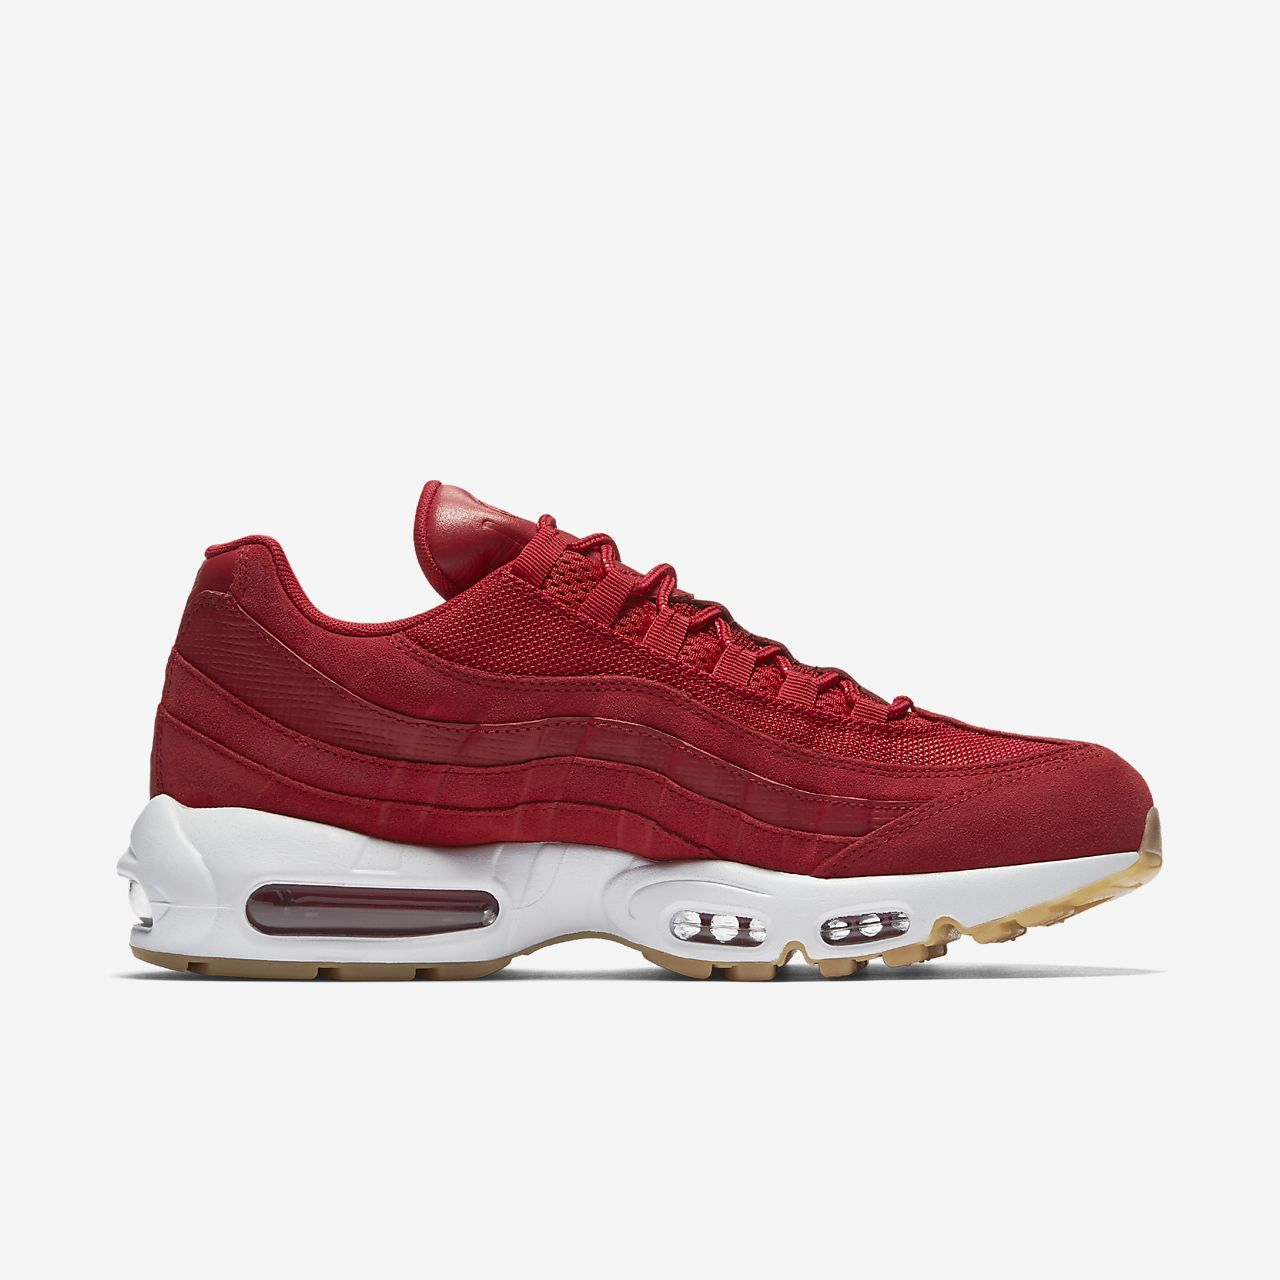 Air Max 95 Premium Trainers In Red - Red Nike Xcp6F3tj